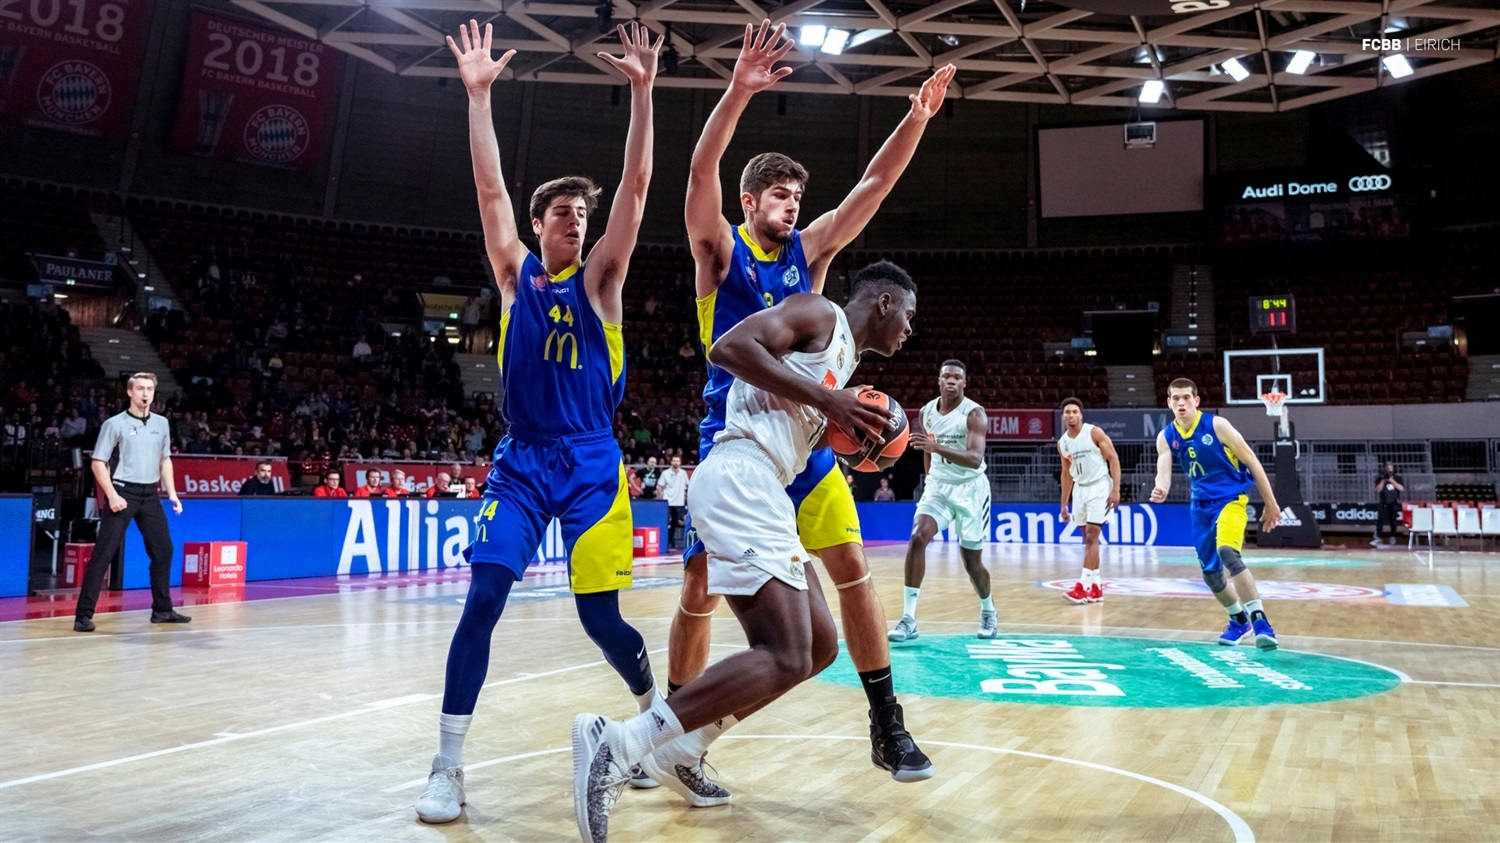 Usman Garuba - U18 Real Madrid - ANGT Munich 2019 (photo FCBB - Eirich) JT18